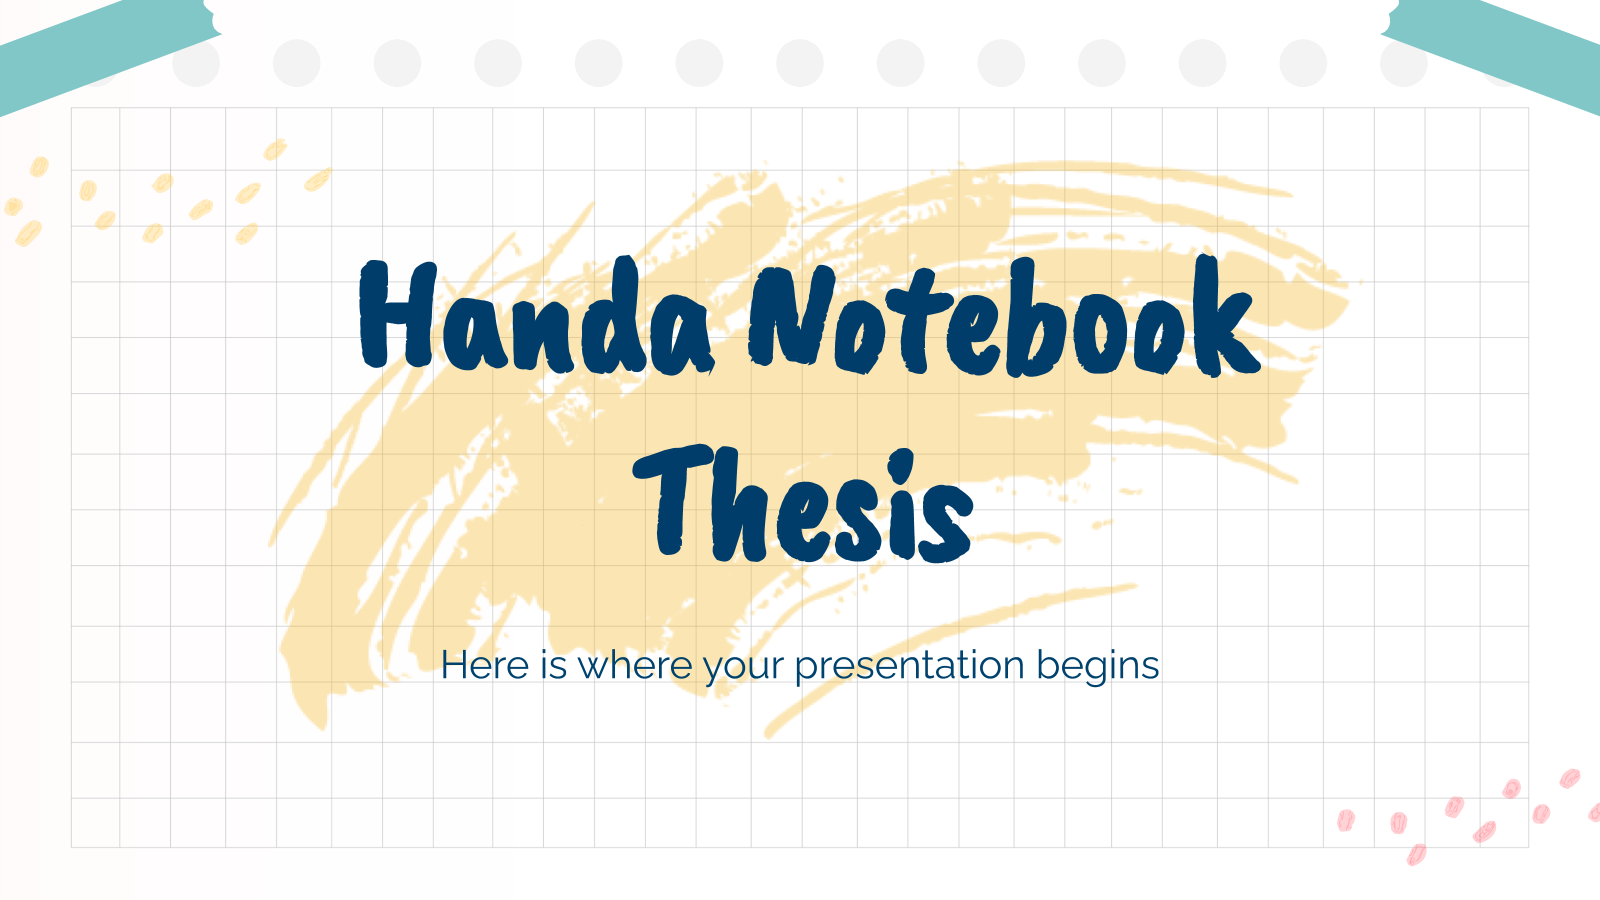 Handa Notebook Thesis presentation template